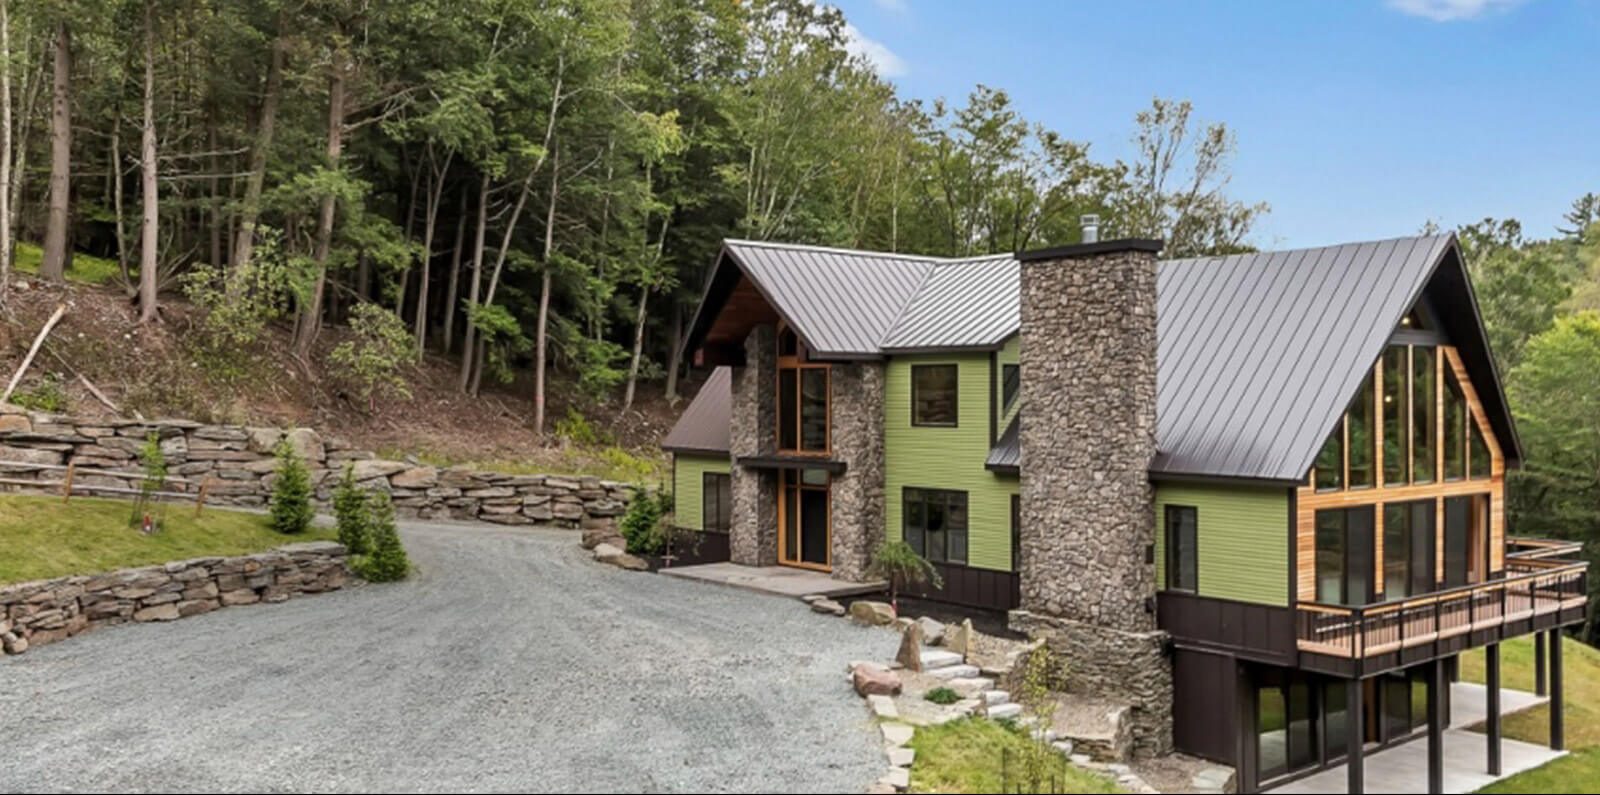 A photo of a green pocono cabin with stonewalls